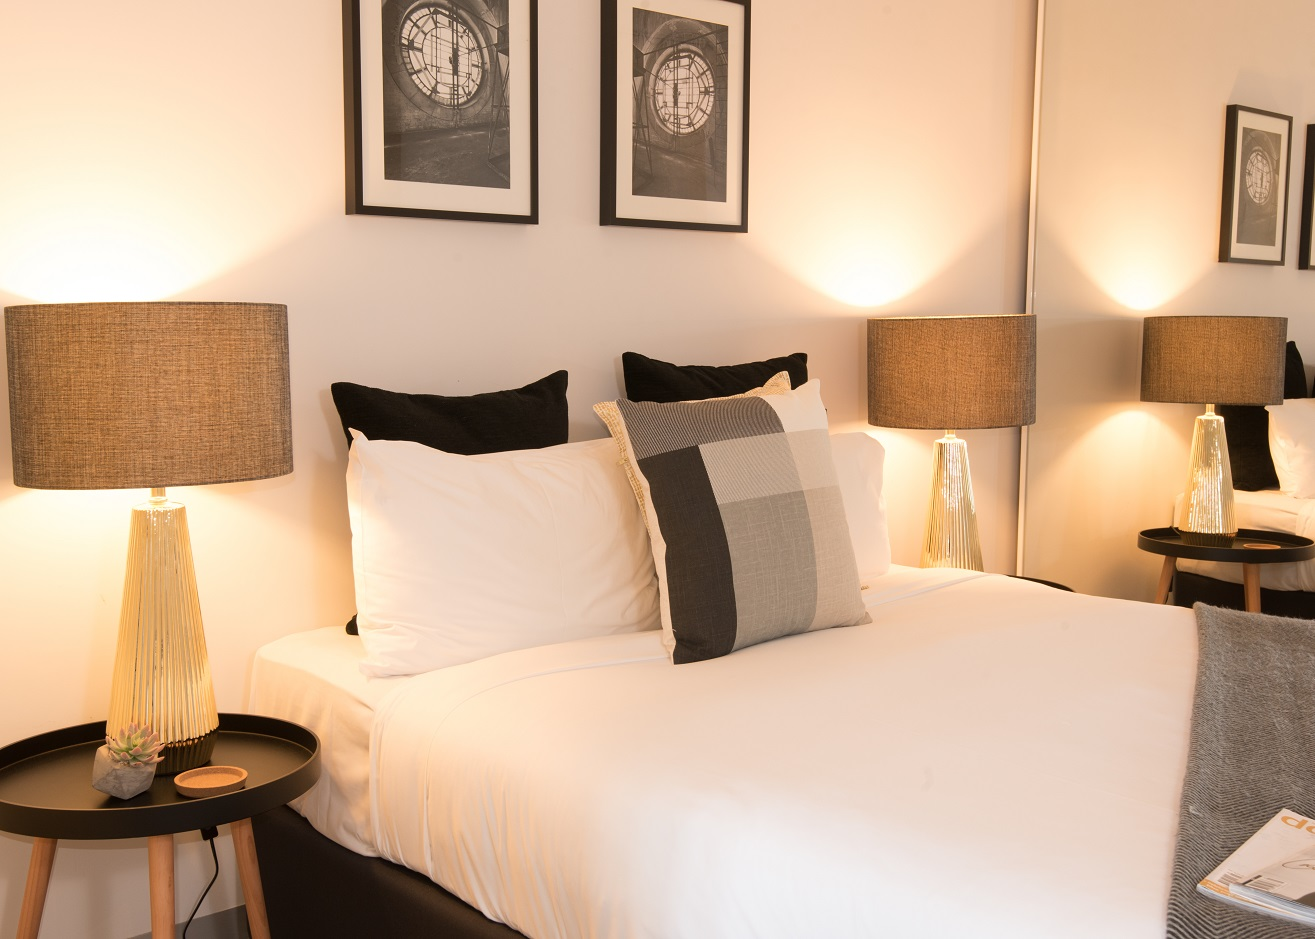 FAMILY APARTMENTS - Trams at door, onsite parking $40, Free Wi-Fi, Full kitchen, great value for money